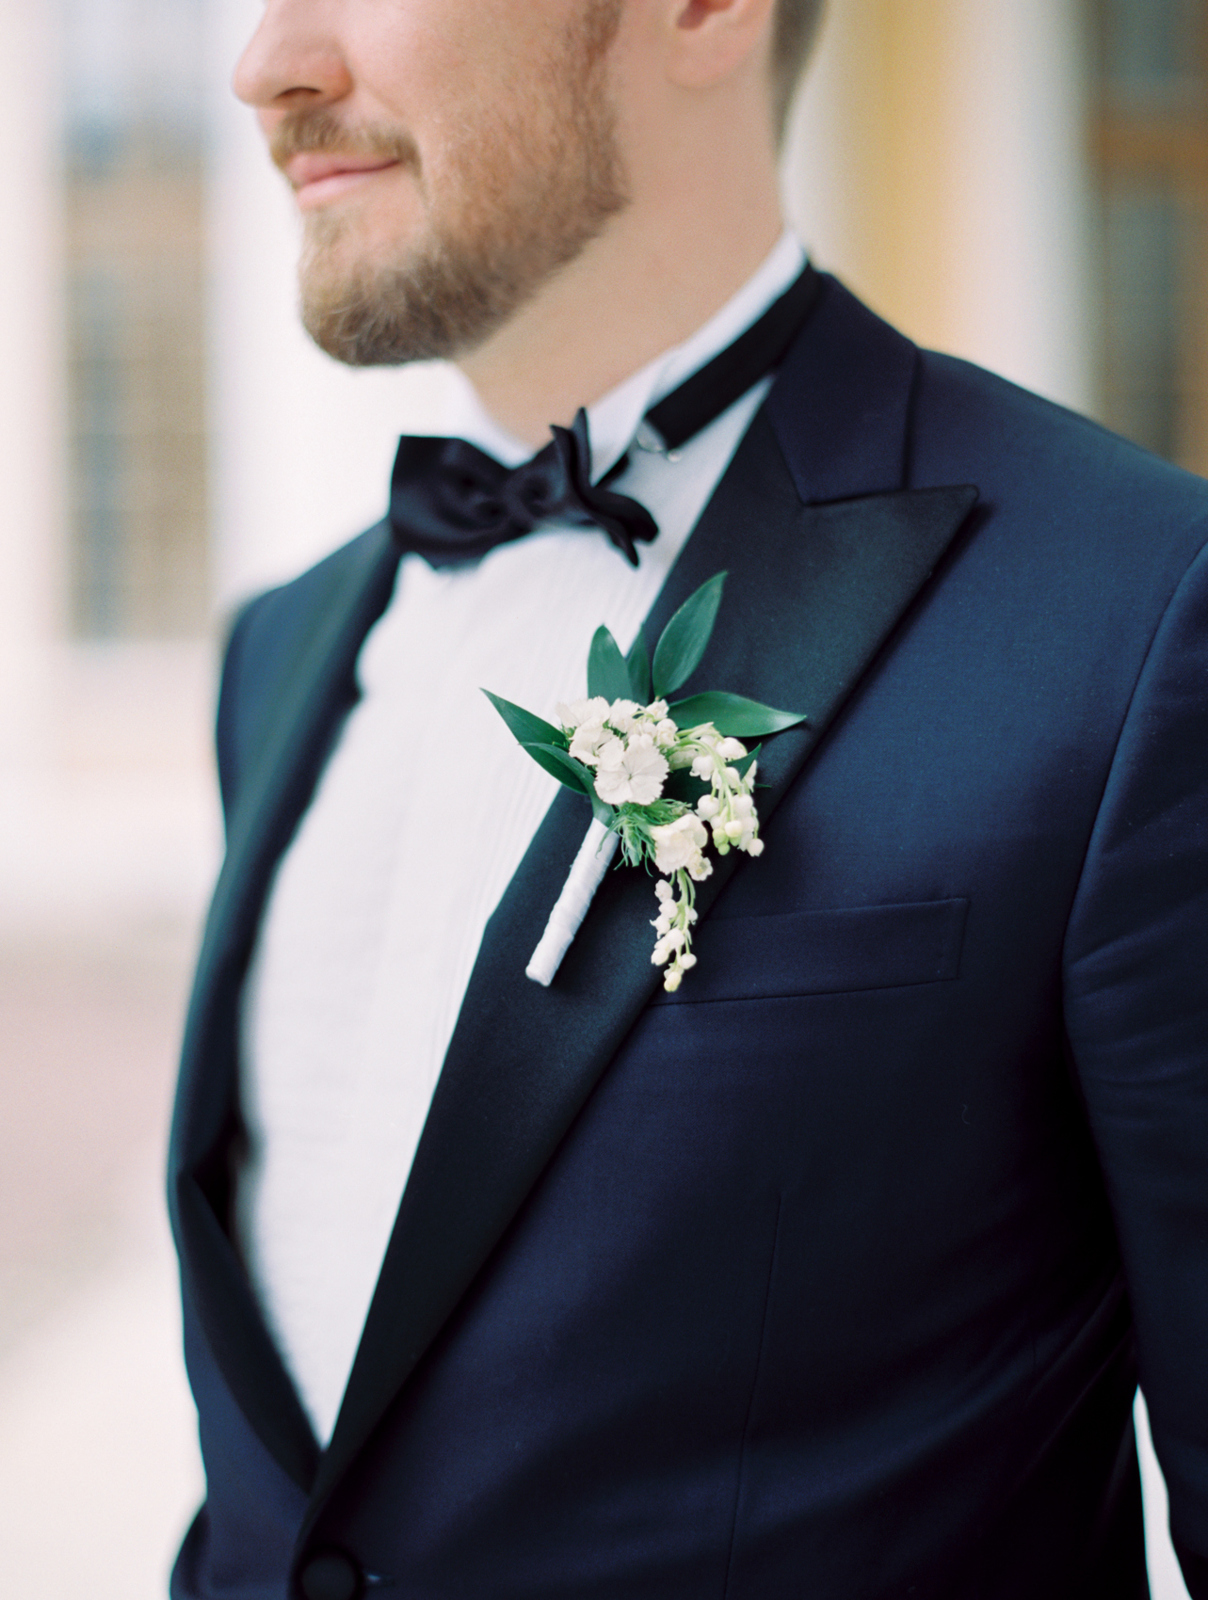 groom's white boutonniere